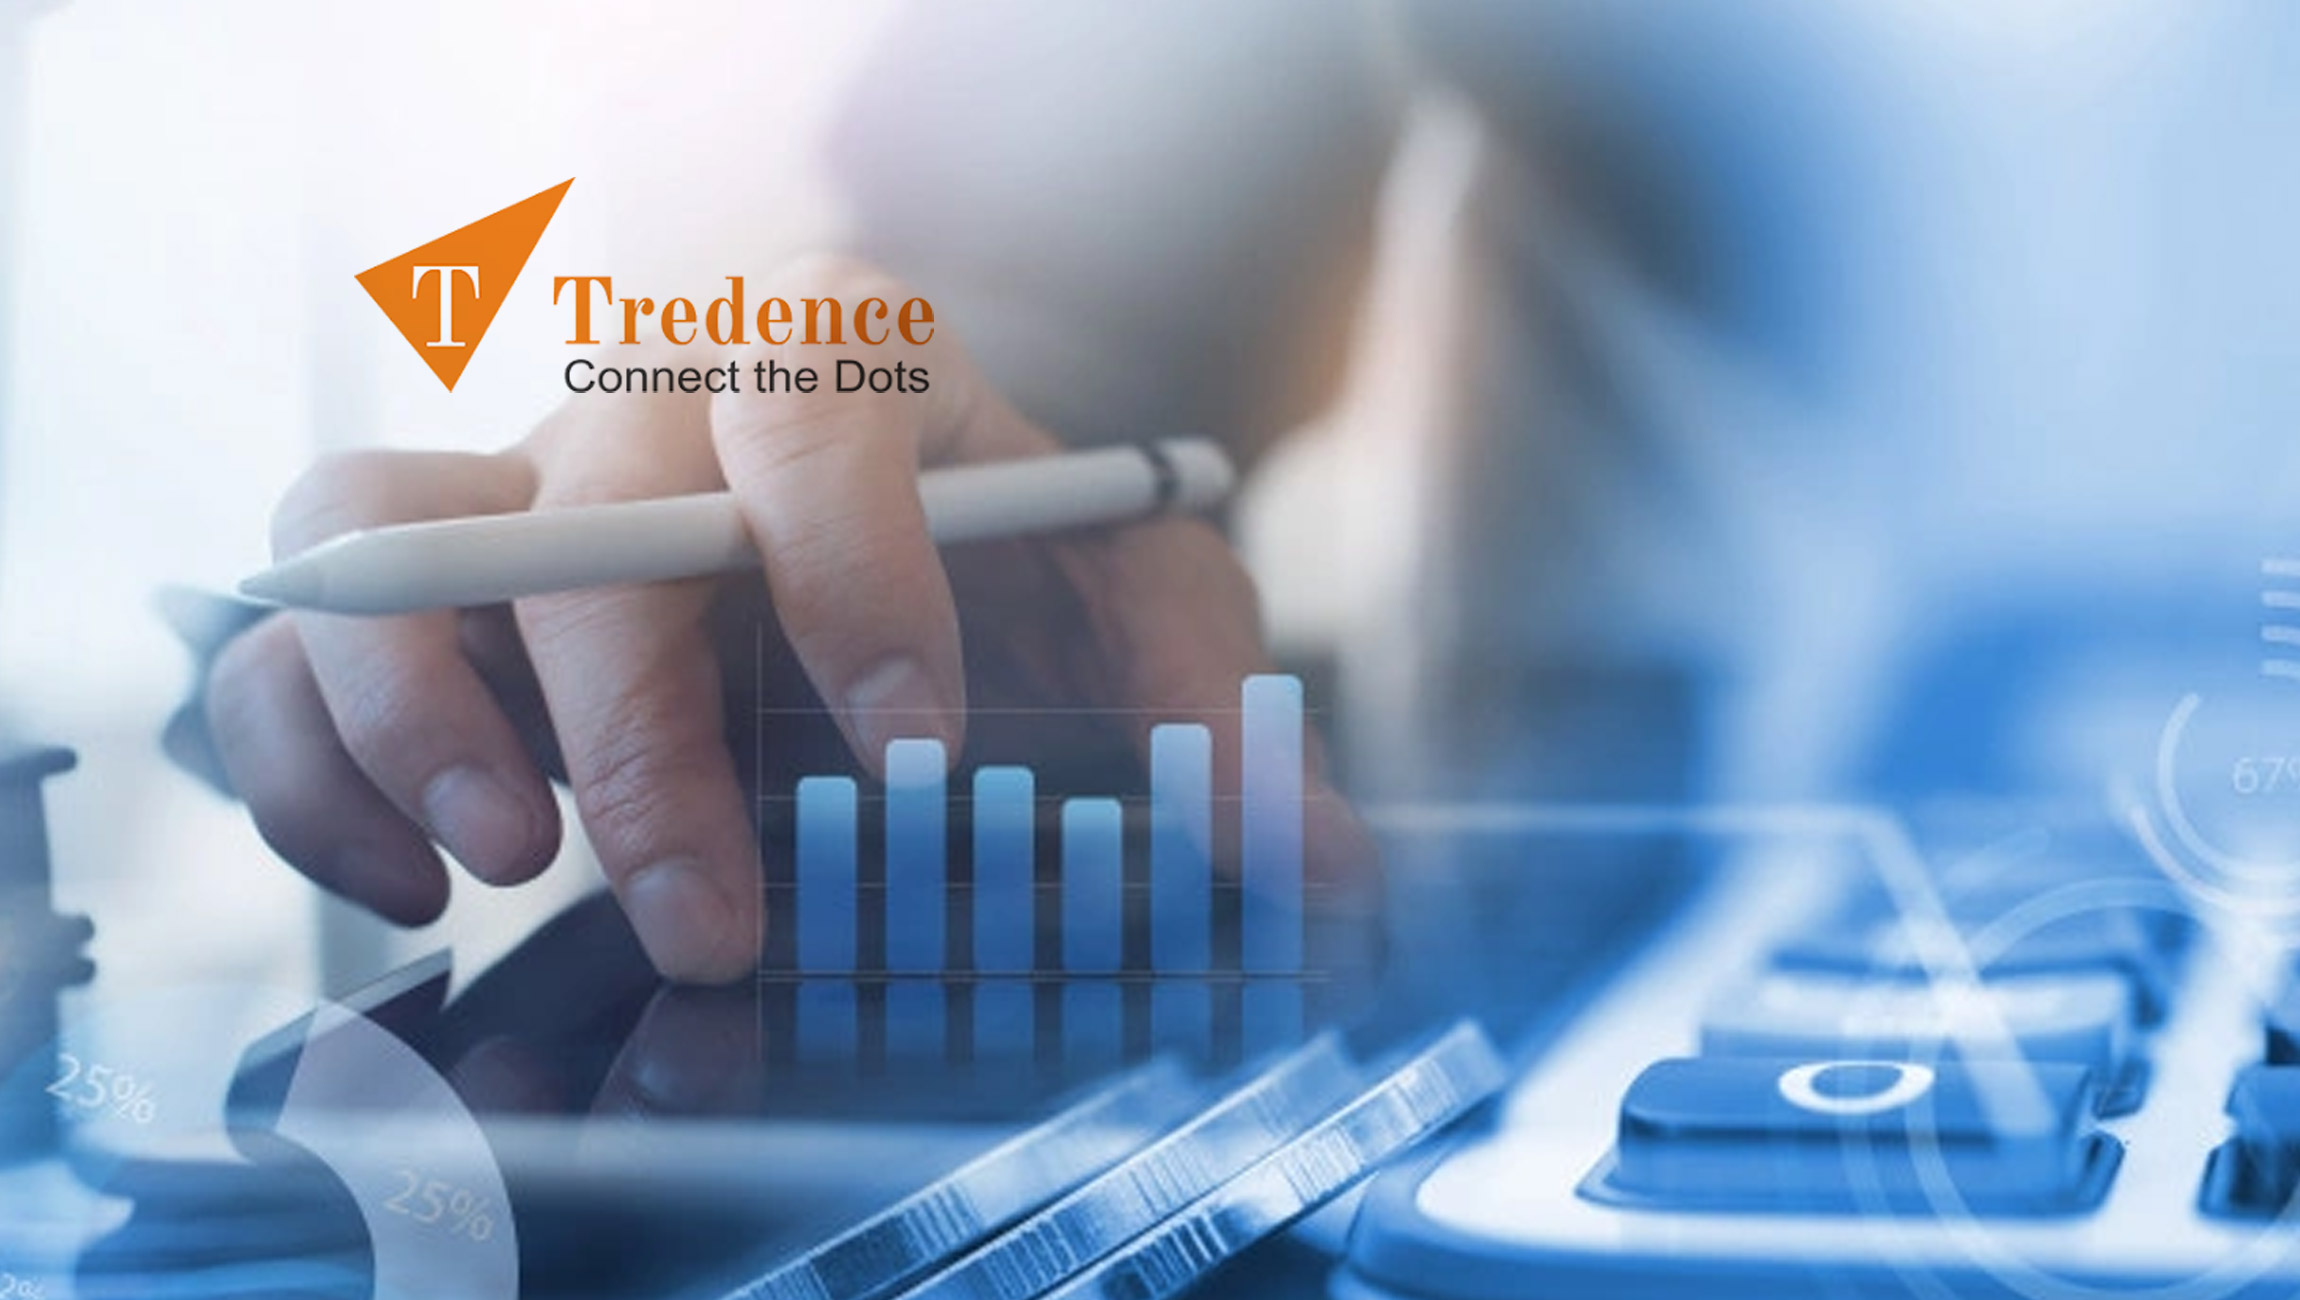 Tredence Inc. Named as a Contender in AI Services by Independent Research Firm